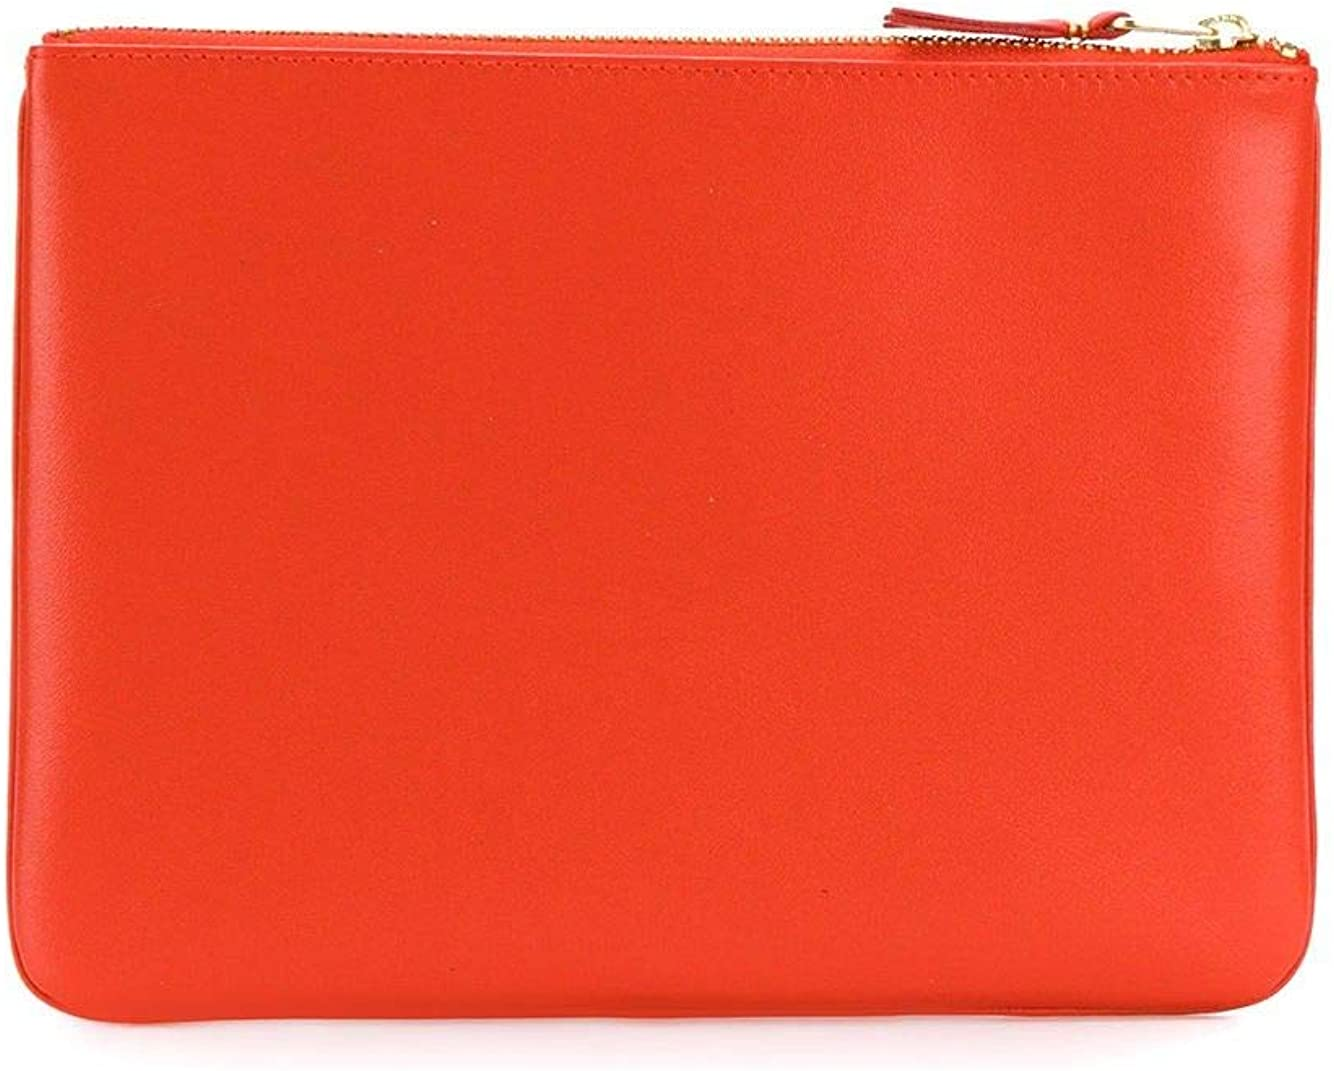 B081J45YYS Luxury Fashion | Comme Des Garçons Mens SA5100ORANGE Orange Wallet | Fall Winter 19 61ztdDIucwL.UL1334_